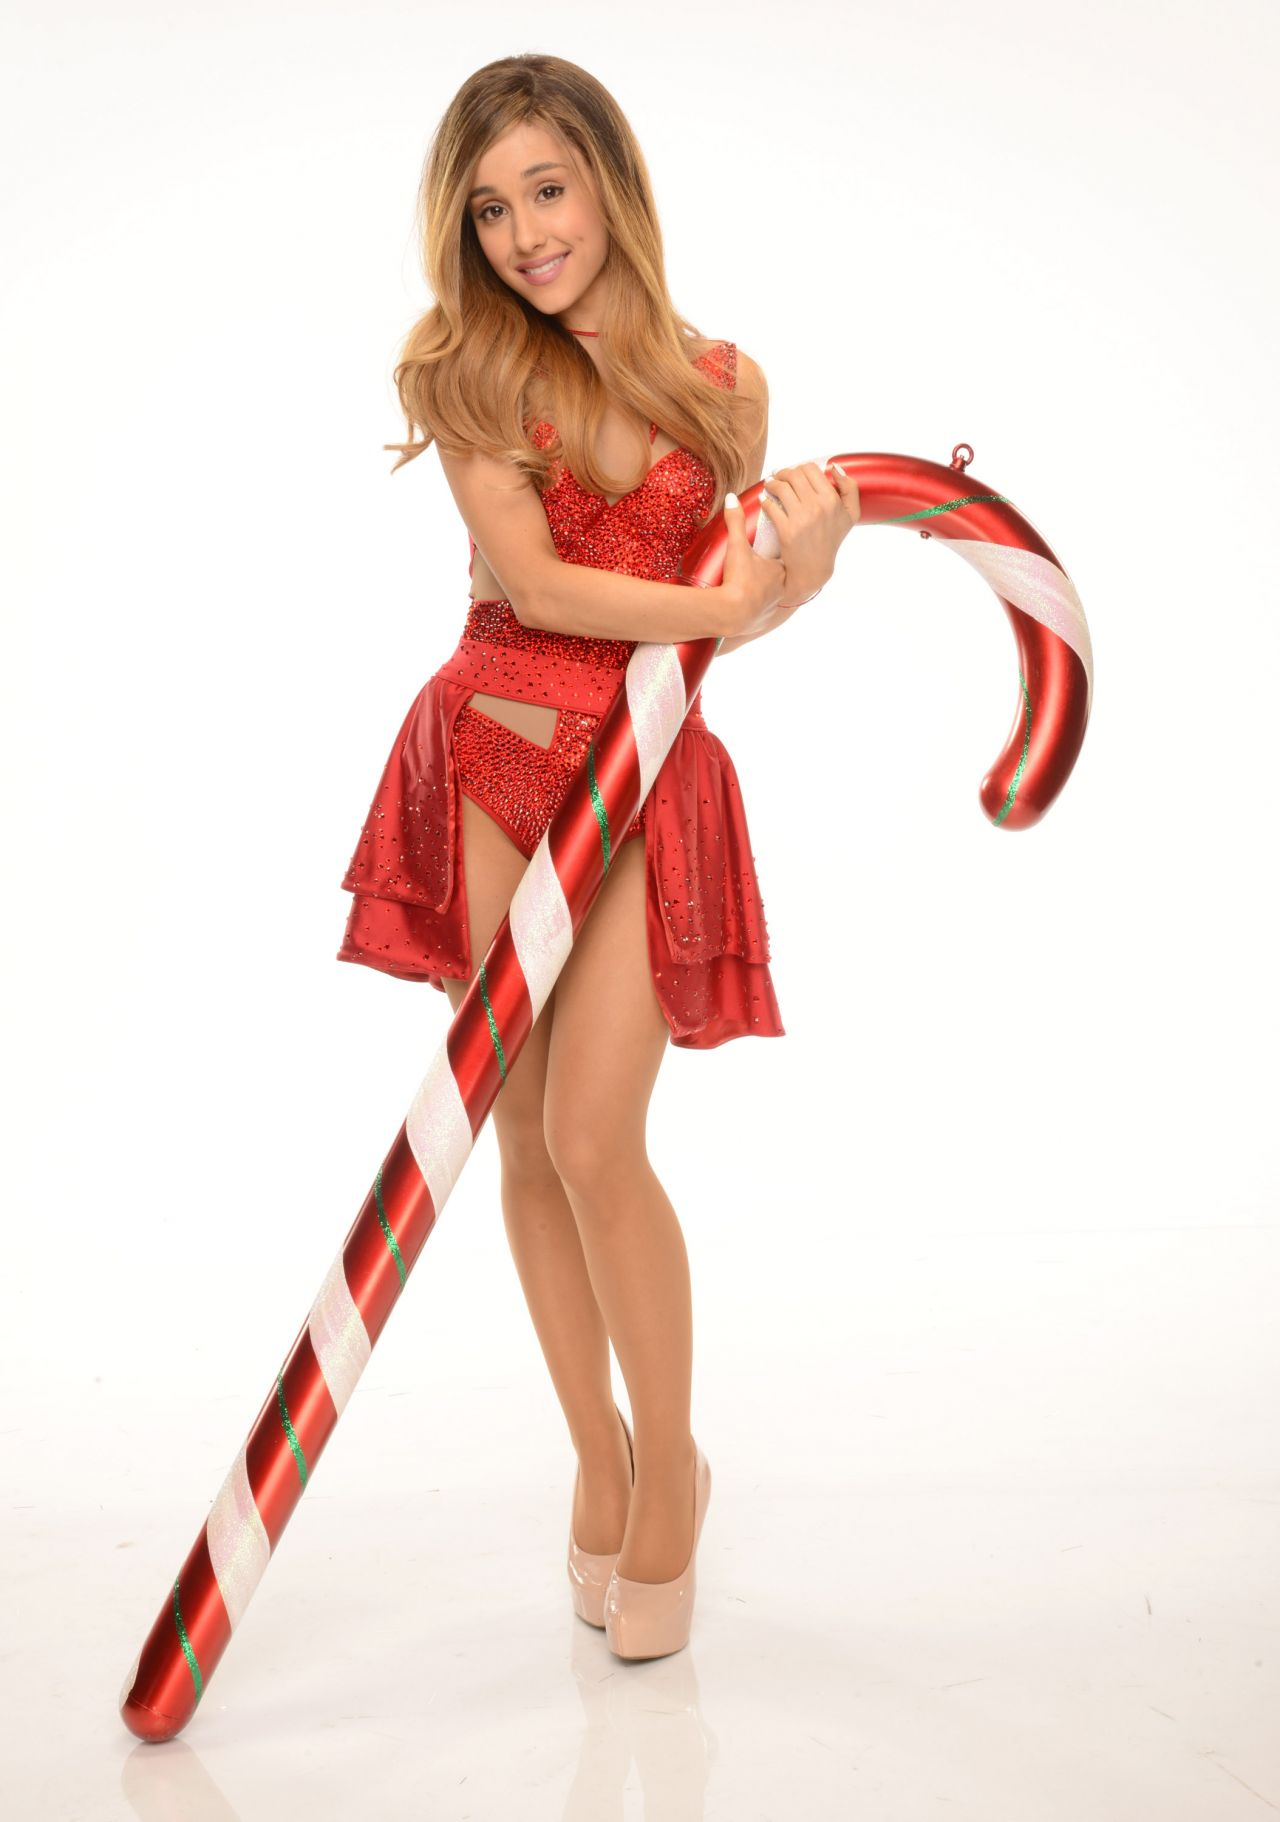 Ariana Grande Photoshoot - Leggy in a Christmas - December 2013